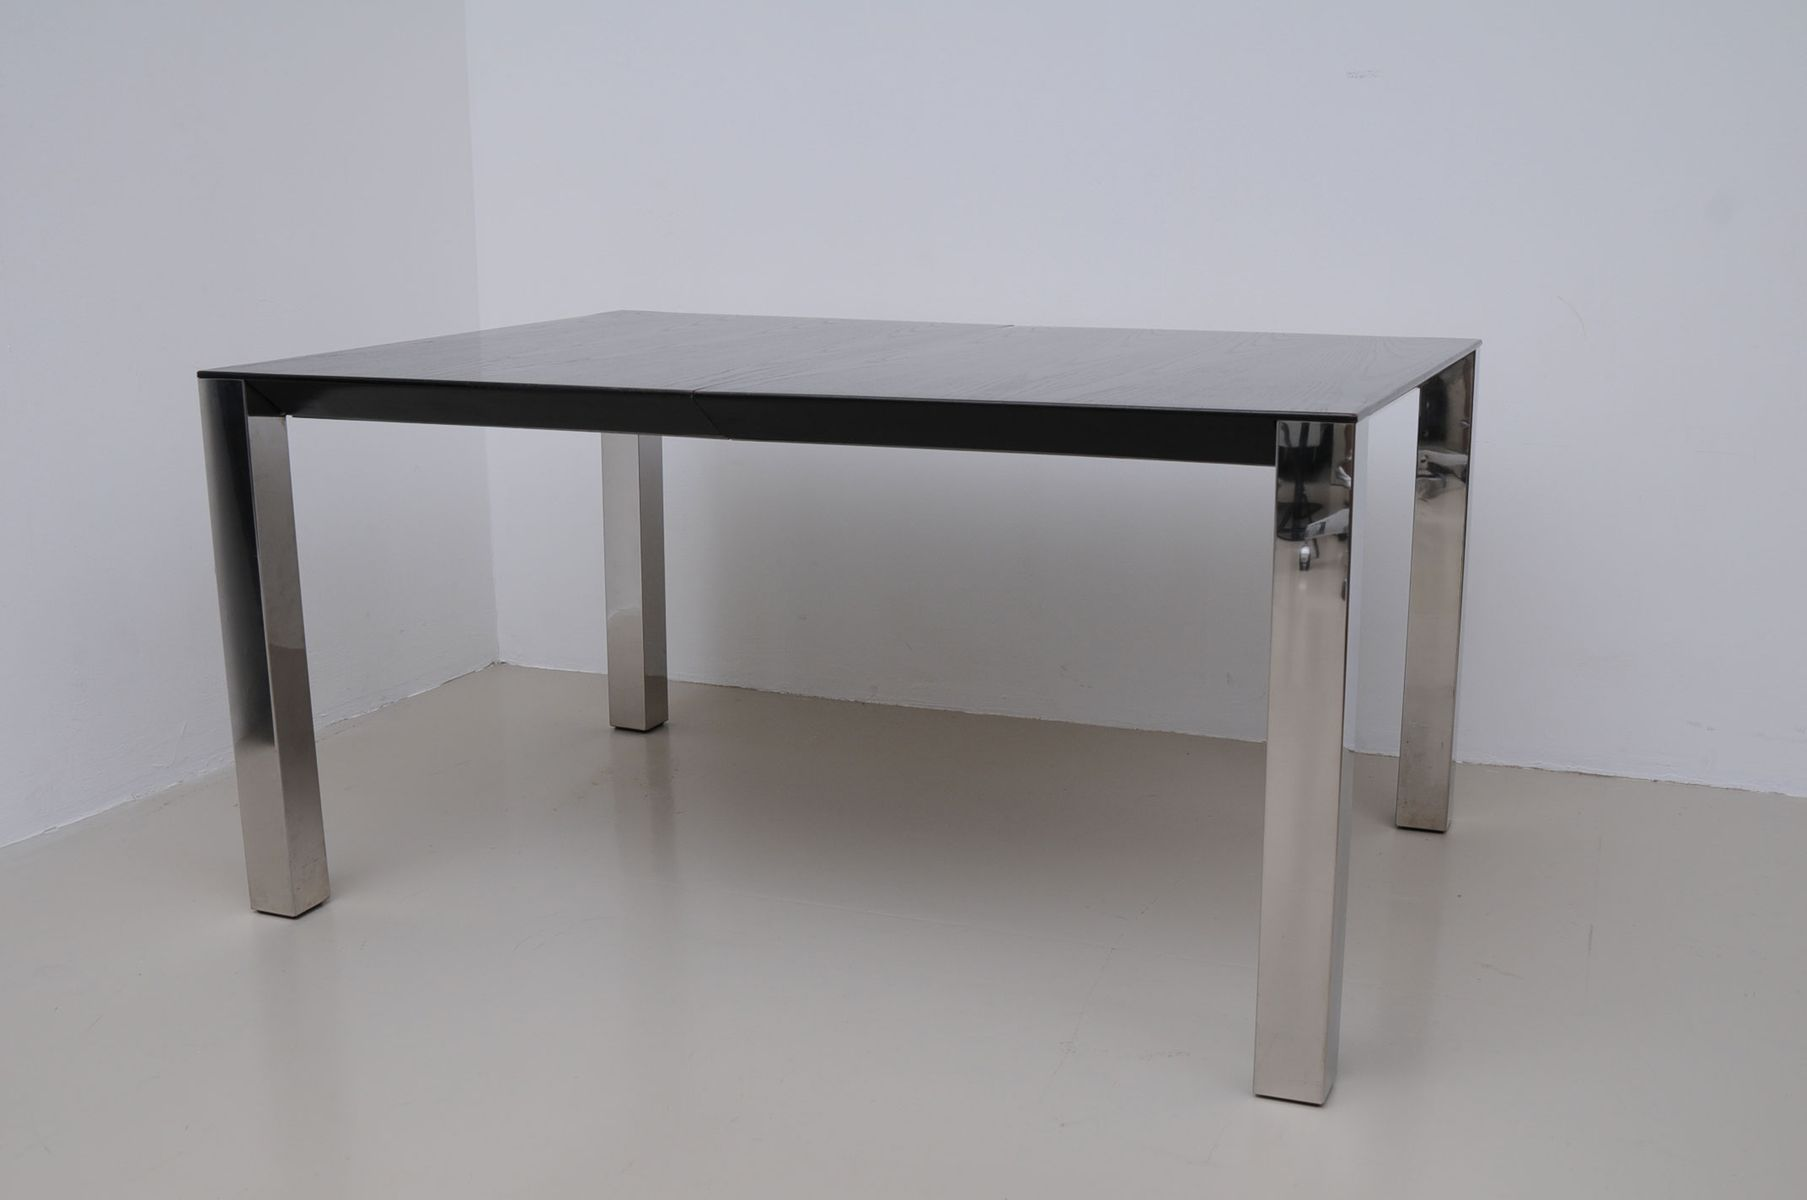 Retro Dining Tables Vintage Dining Table By Giovanni Offredi For Saporiti Italia For